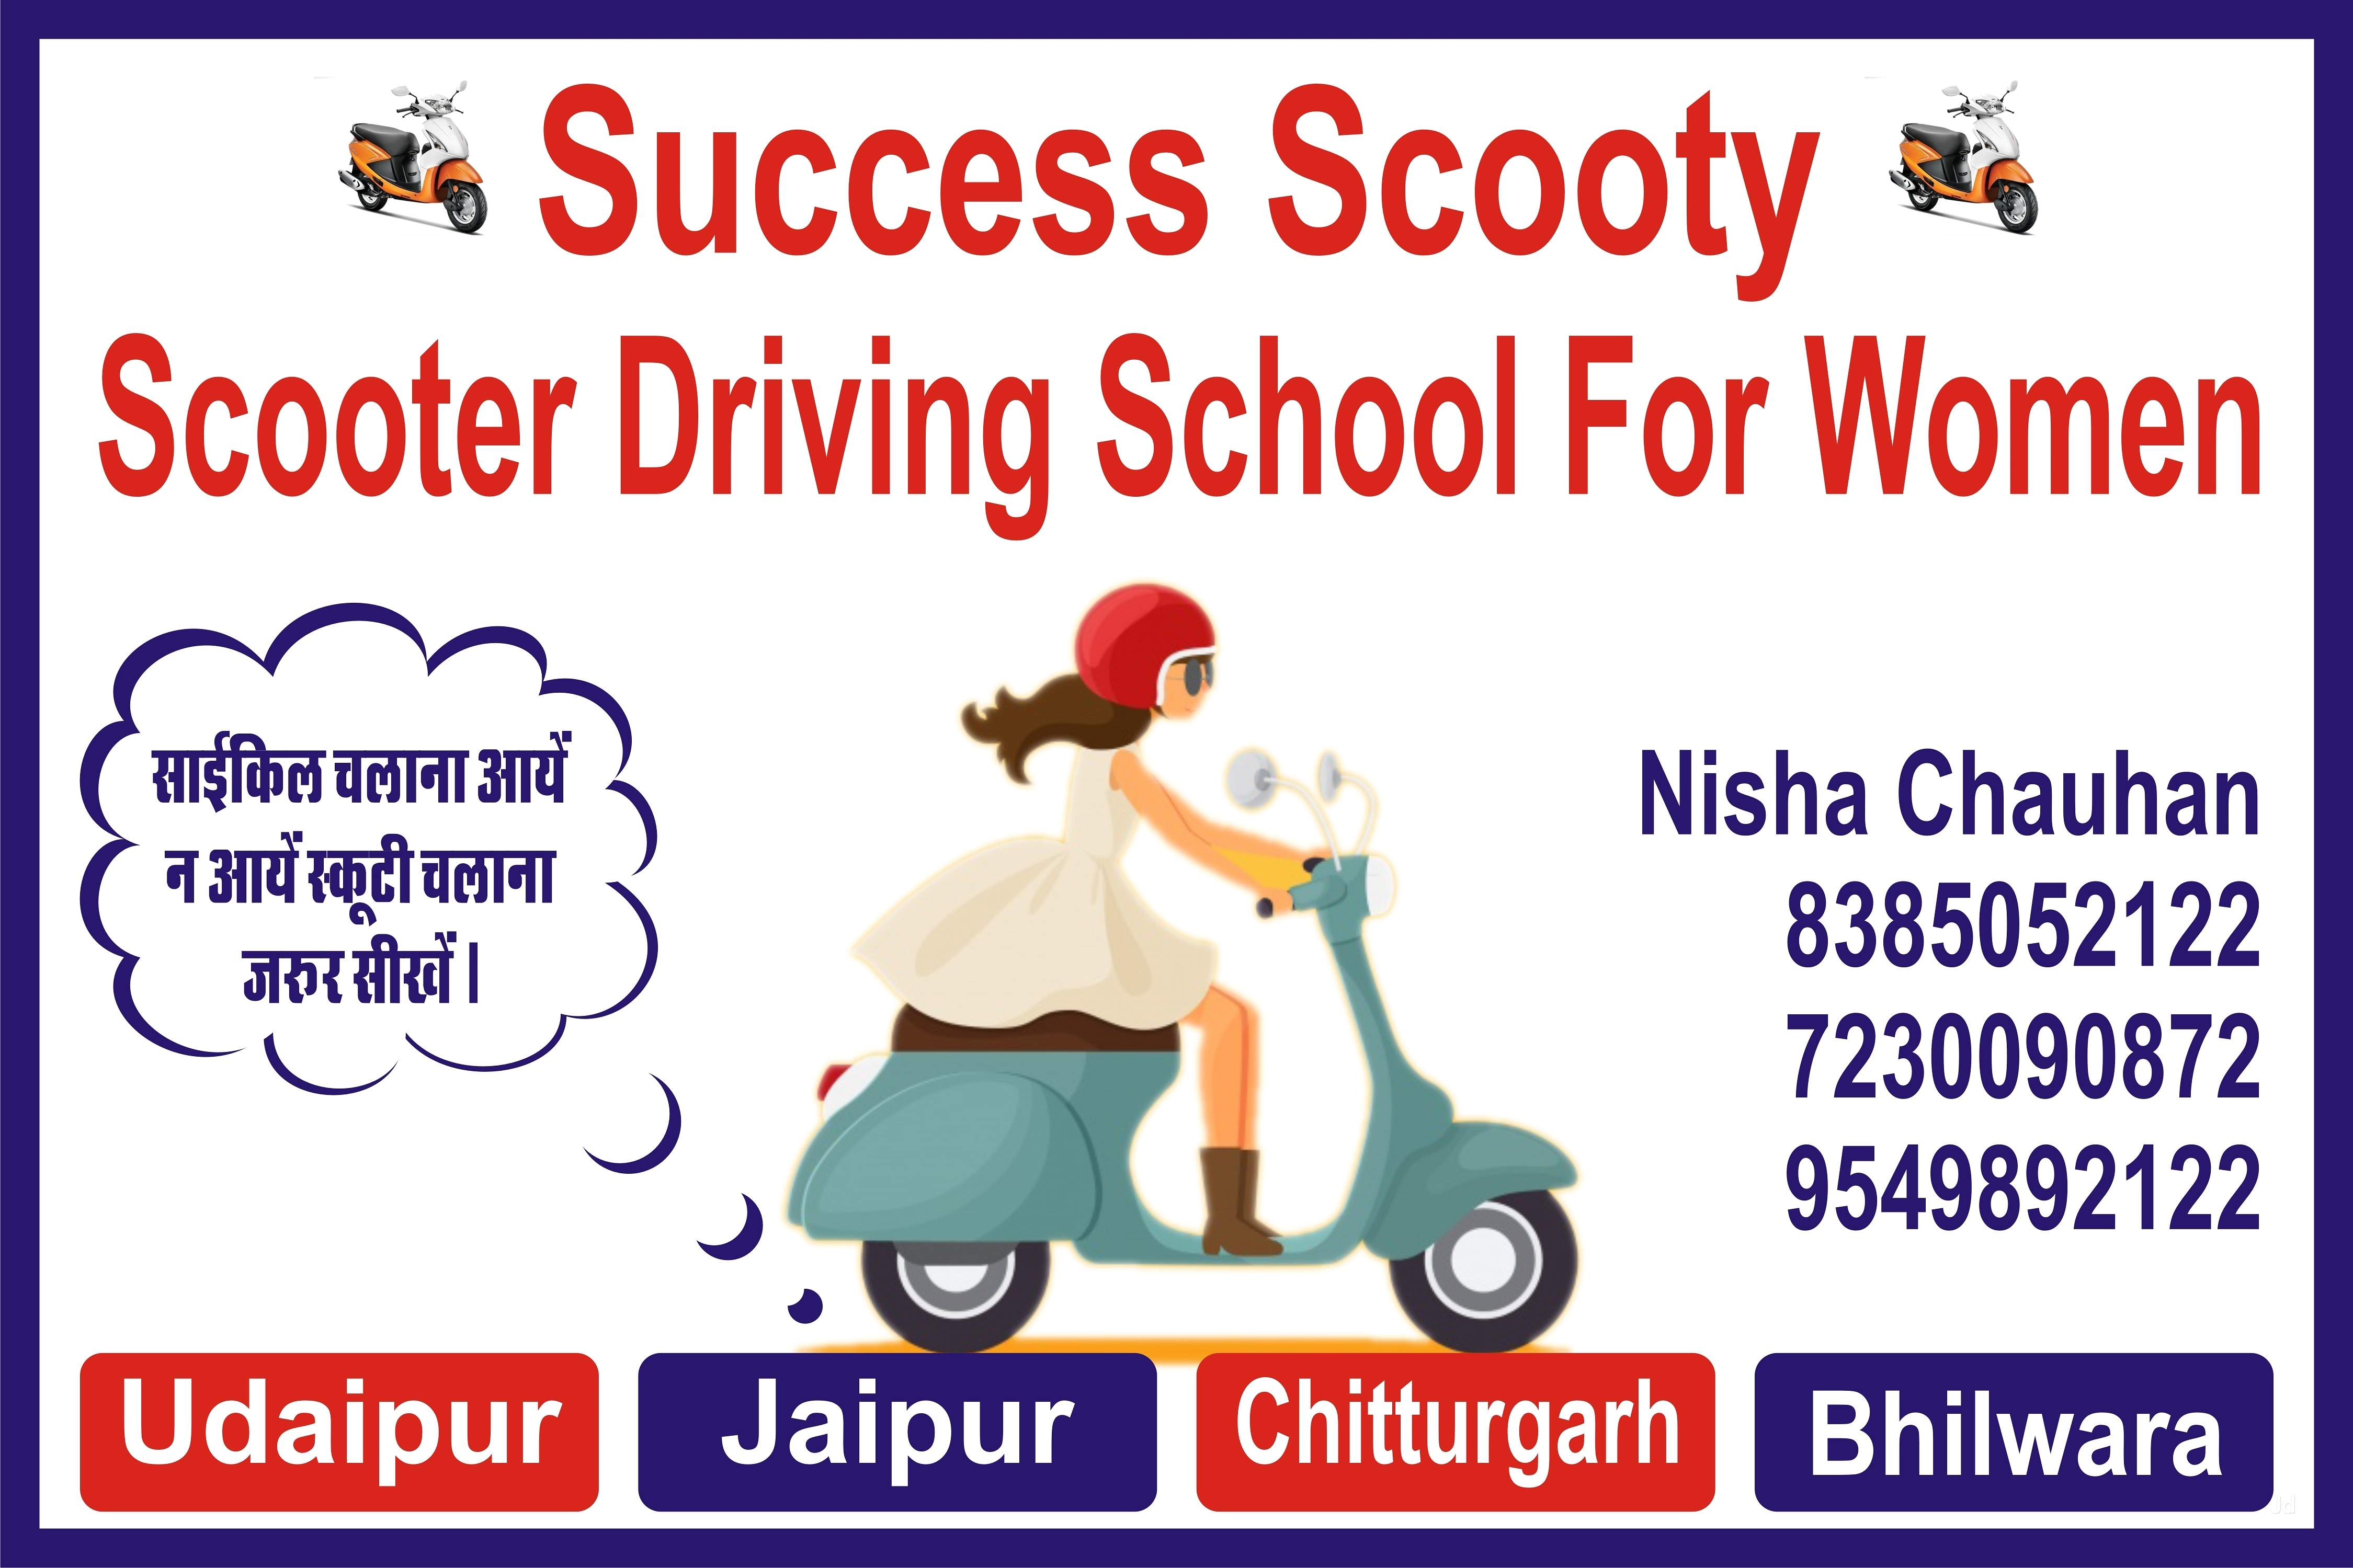 Success scooty for women. Scooter clipart driving school